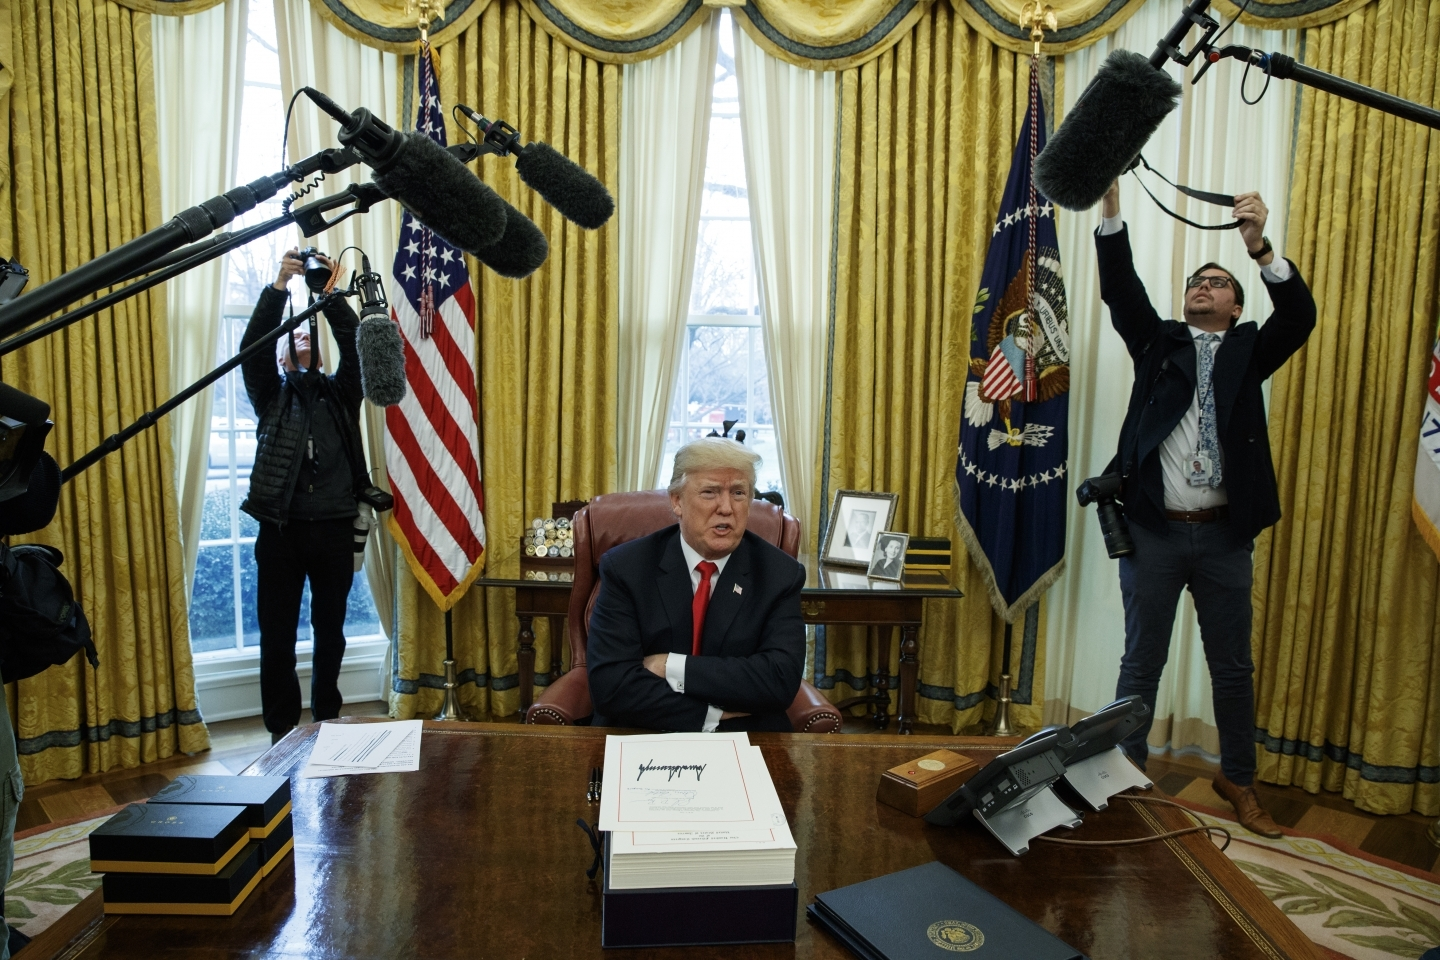 President Donald Trump signed the tax bill and the continuing resolution to fund the government on Friday, Dec. 22, 2017 in Washington. (AP Photo/Evan Vucci)